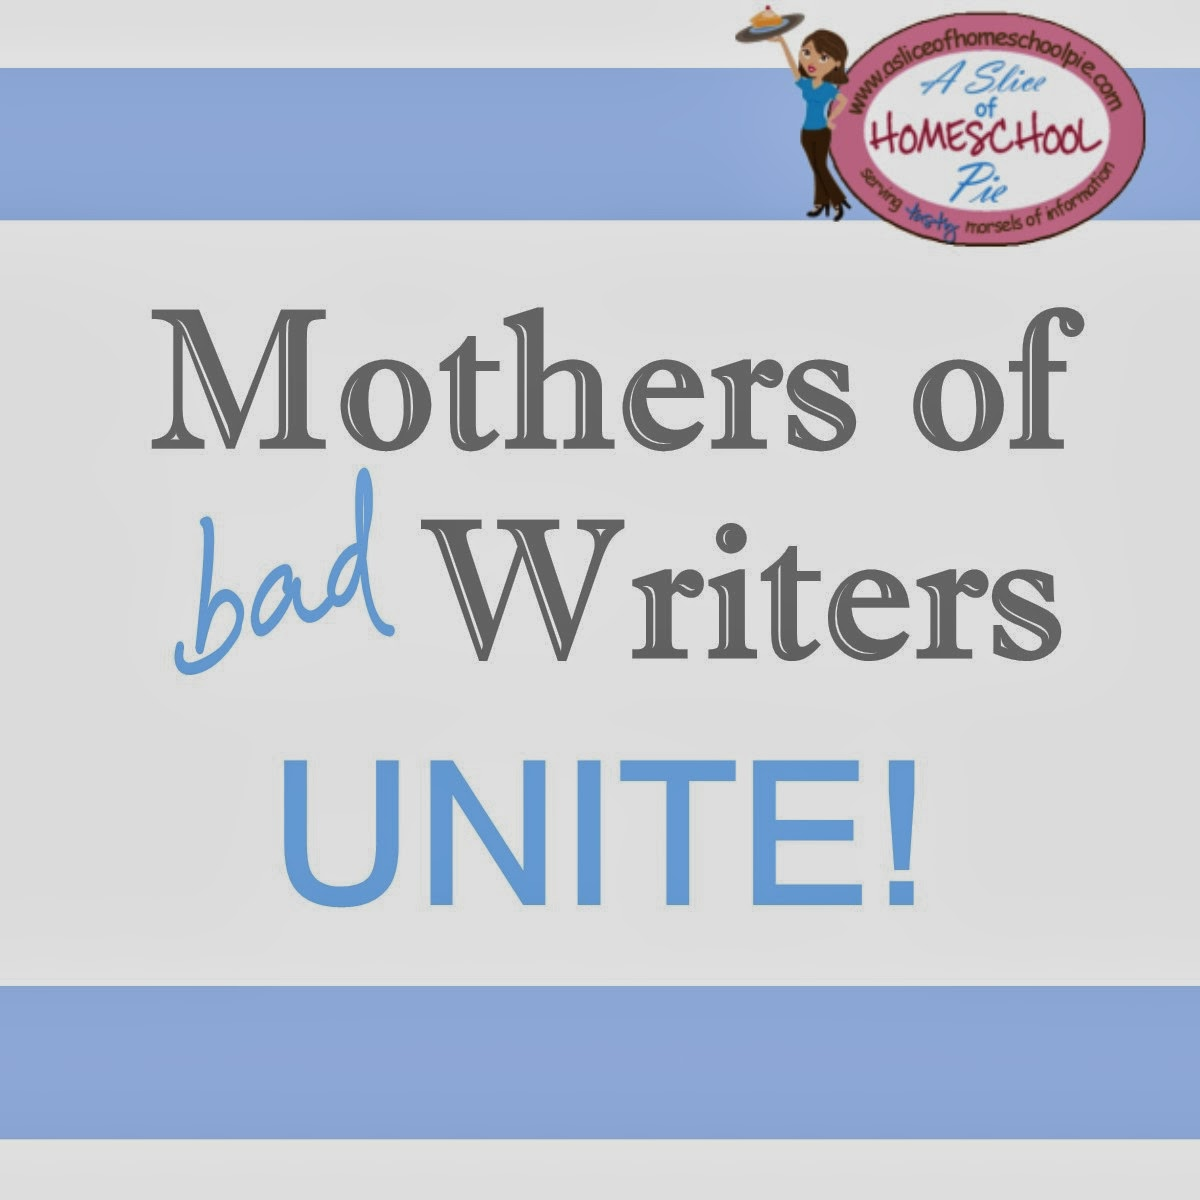 Mothers of Bad Writers Unite! Article by Julie Bogart of Brave Writer - on A Slice of Homeschool Pie.com #bravewriter #writing